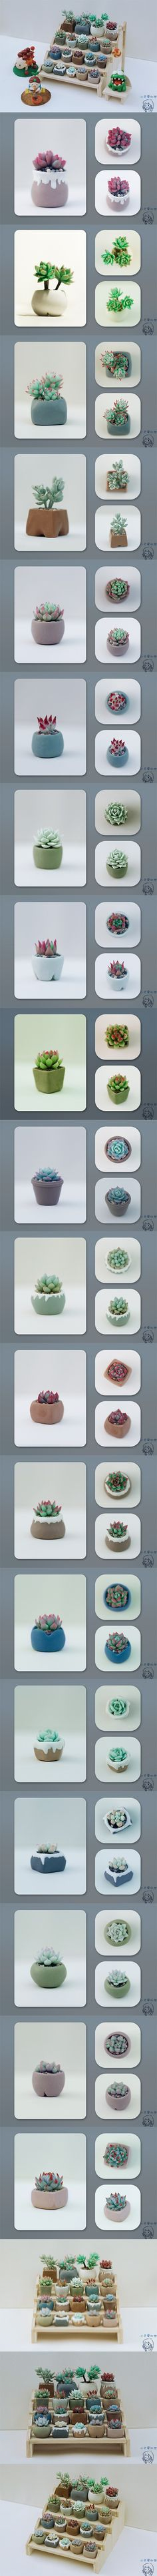 @yannarra - Oo! Maybe I'll commission some polymer succulents!